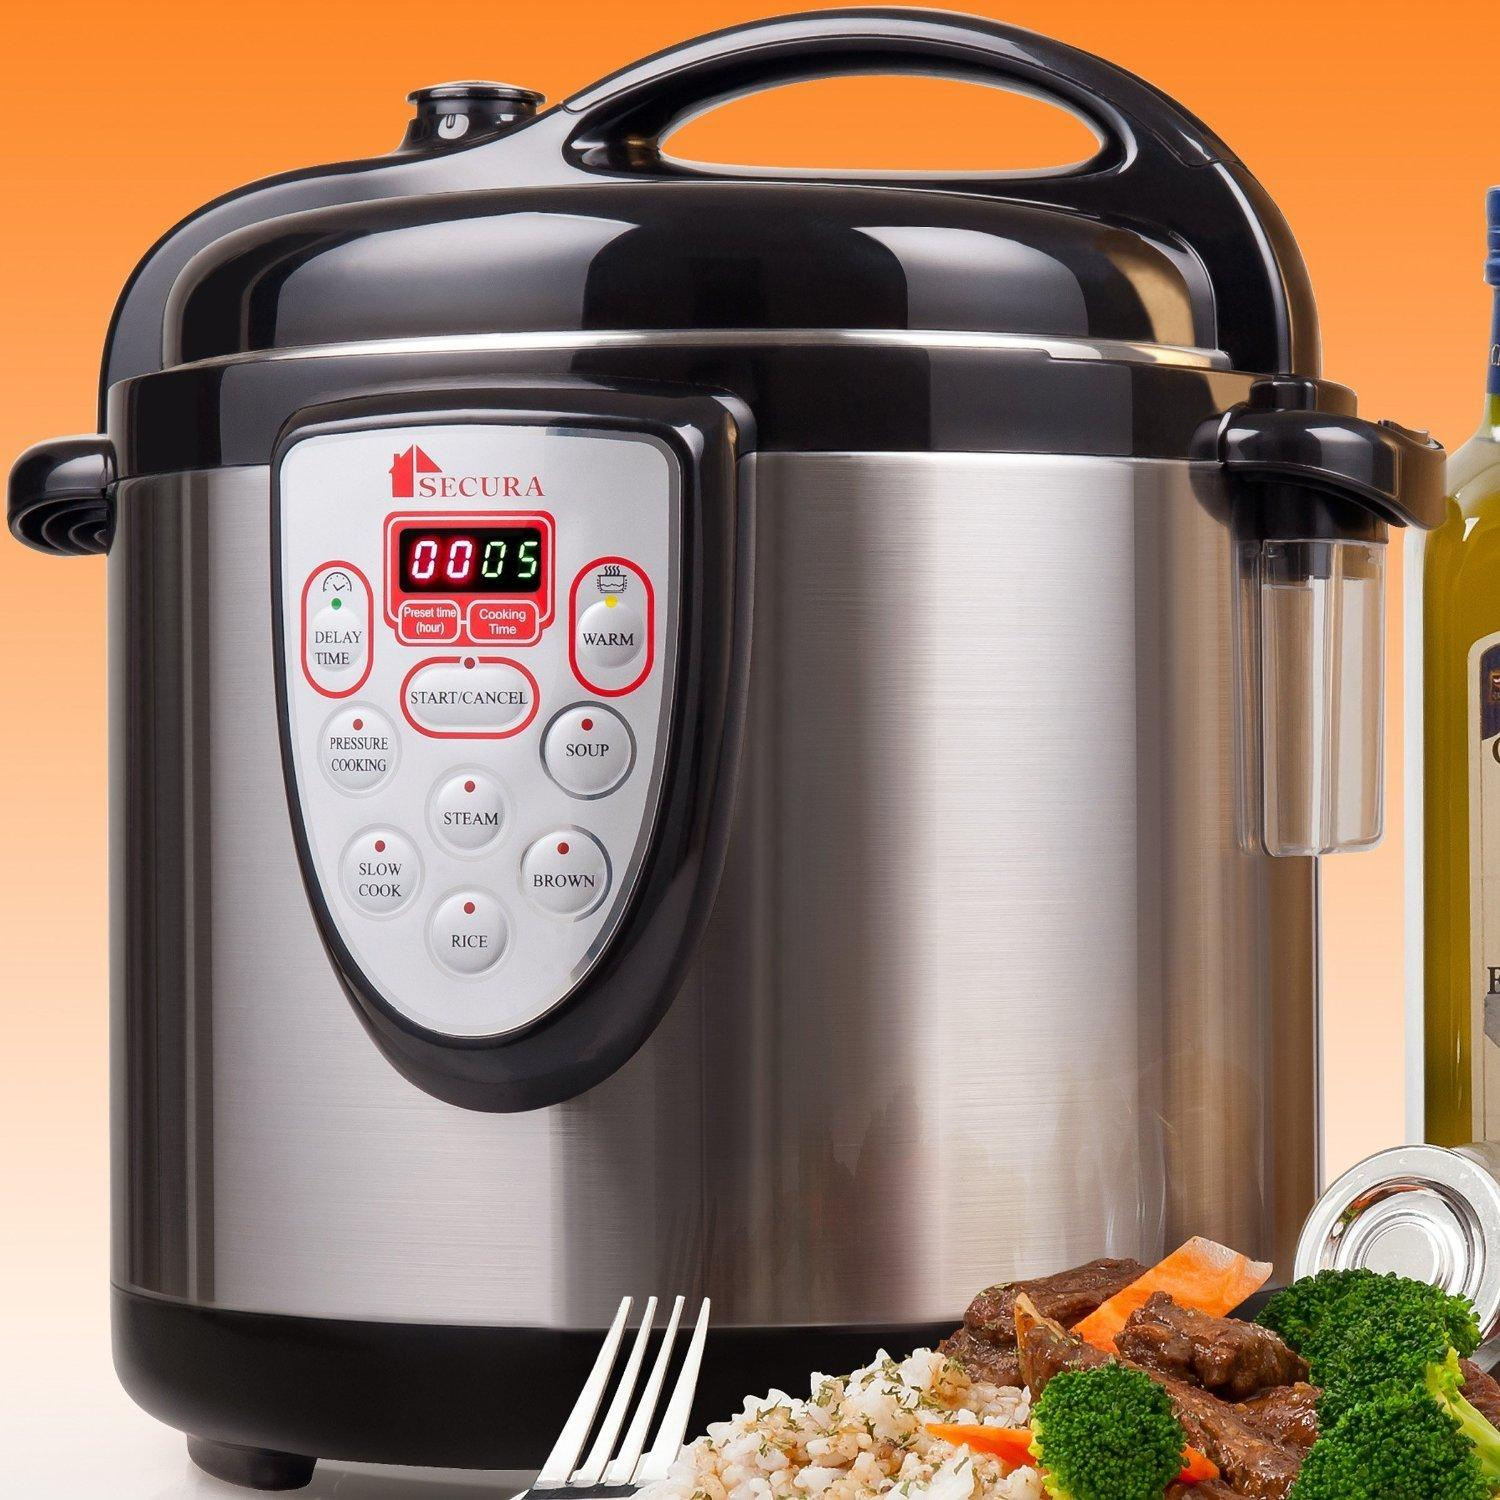 $88 Secura 6-in-1 Electric Pressure Cooker 6qt, 18/10 Stainless Steel Cooking Pot